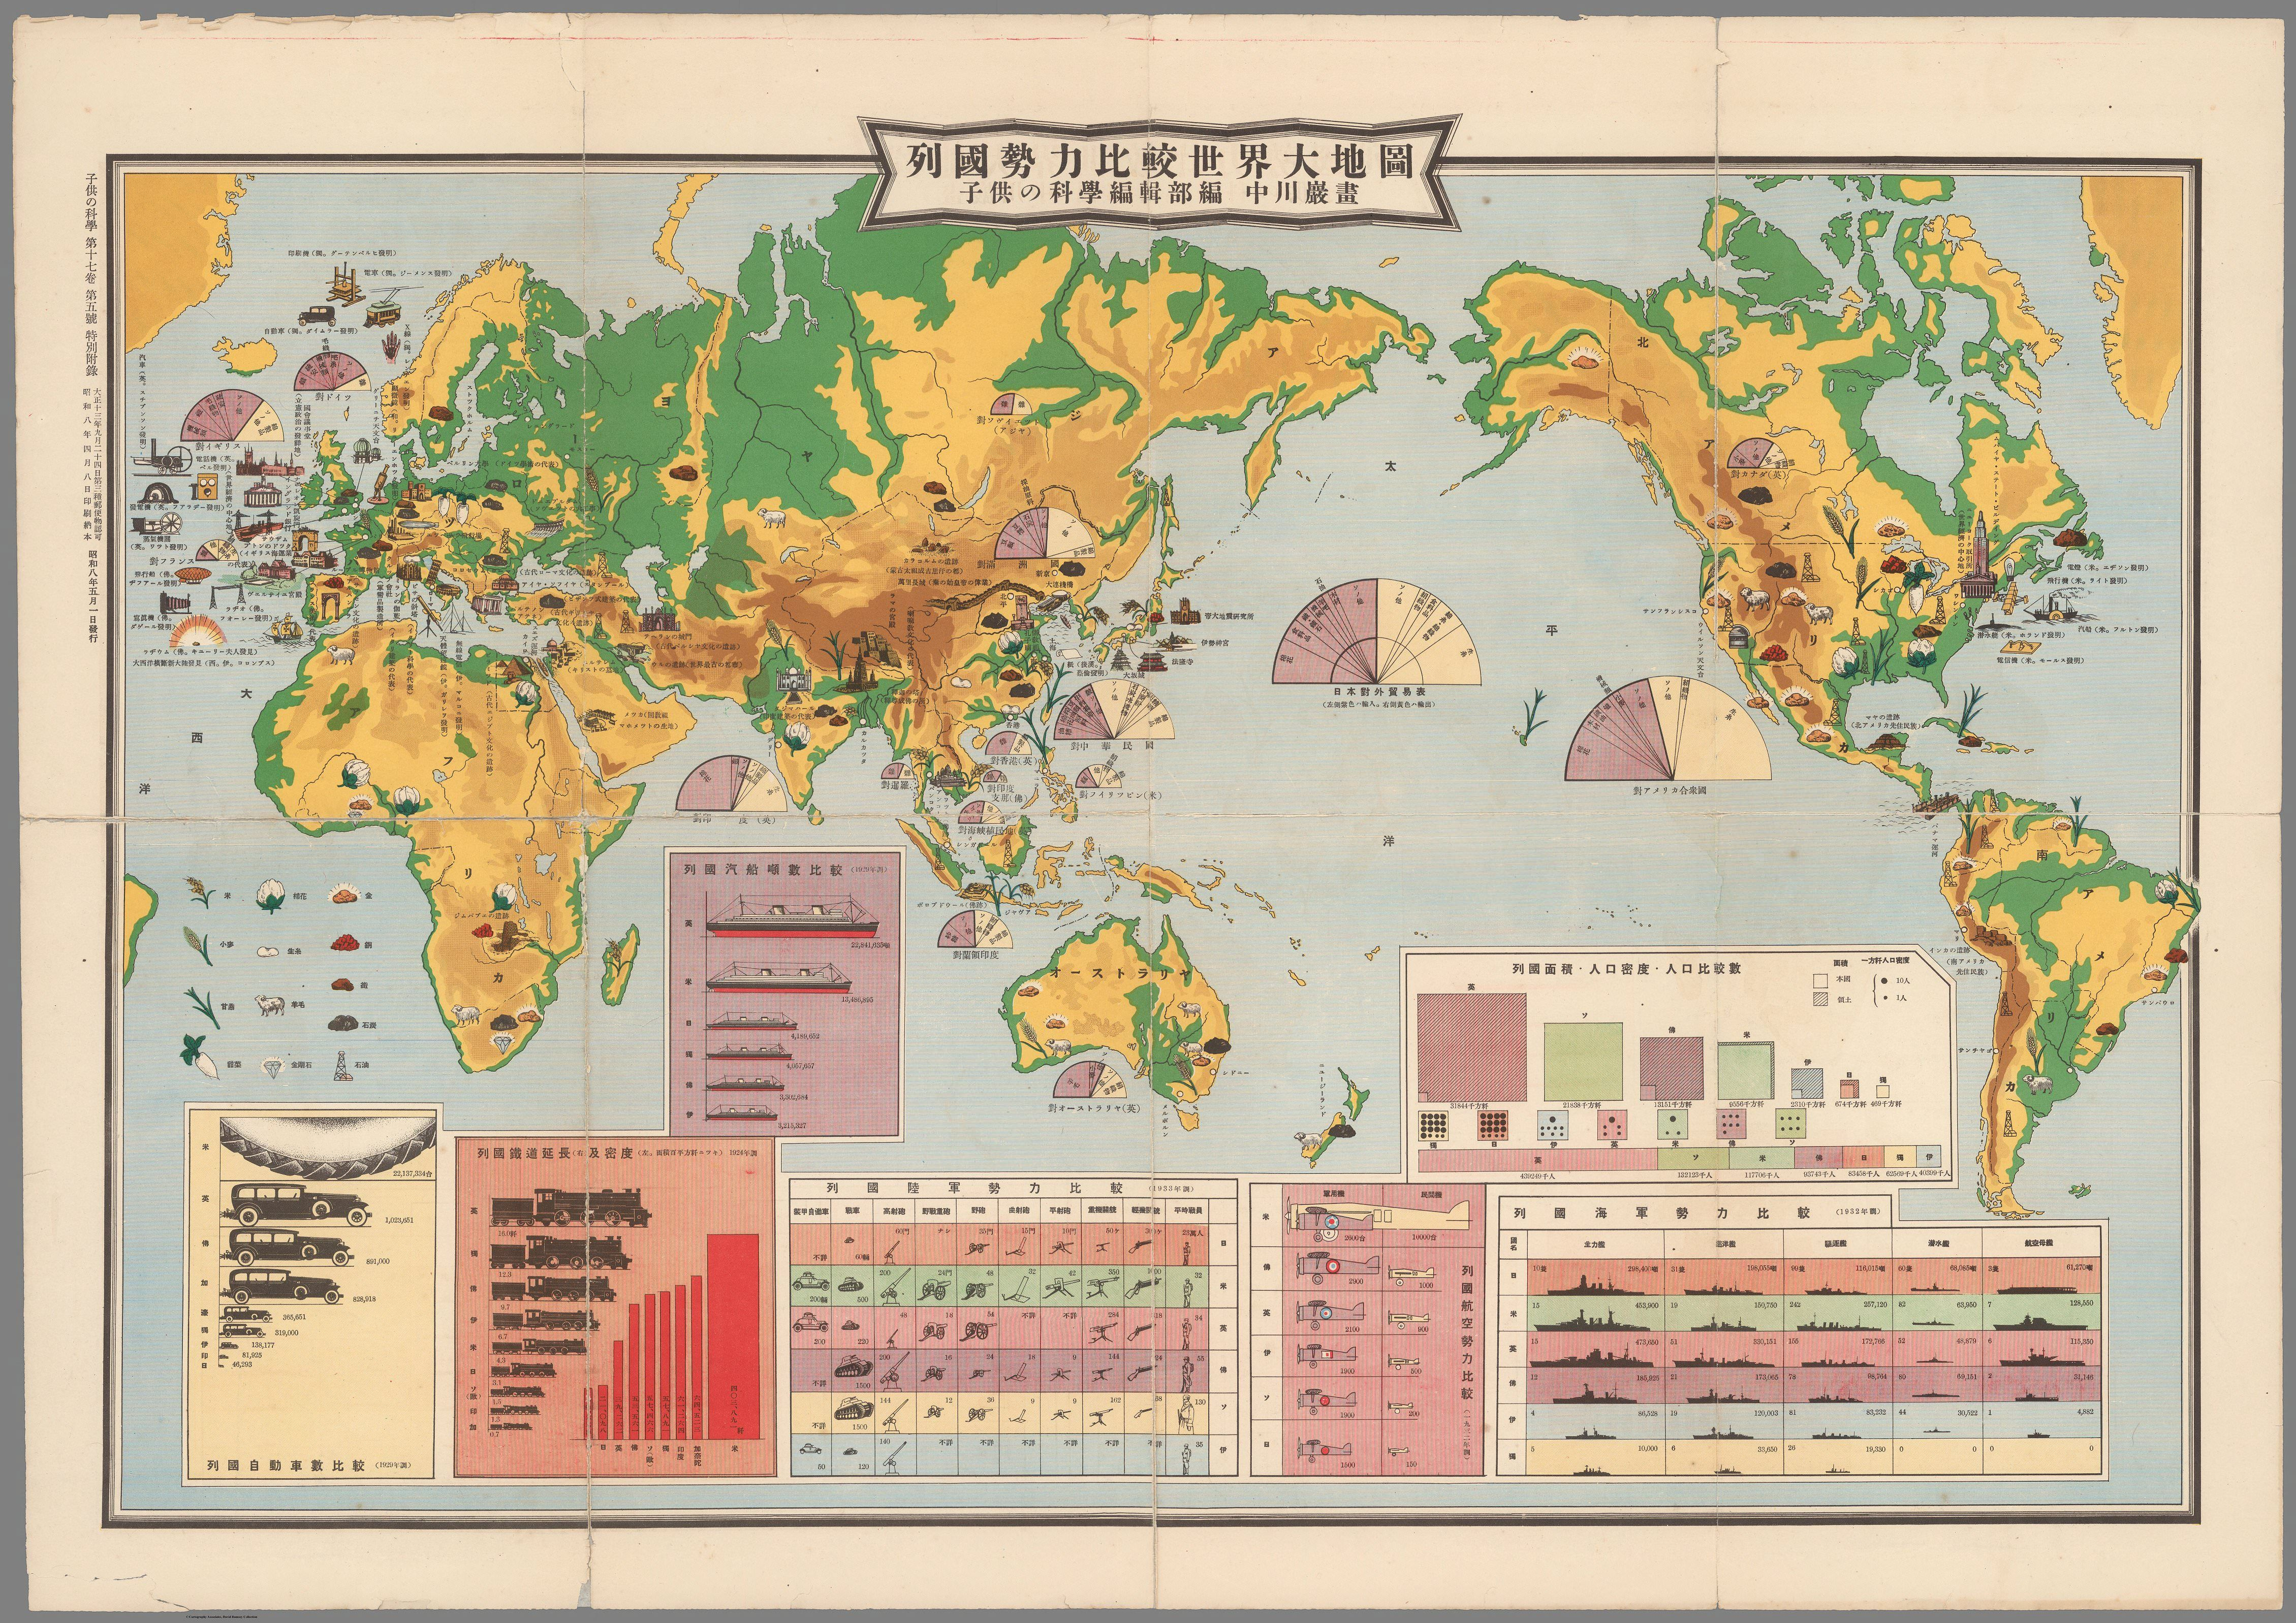 Japanese 1933 pictorial map of the world published by seibundo japanese 1933 pictorial map of the world published by seibundo shinkosha comparison map of publicscrutiny Images